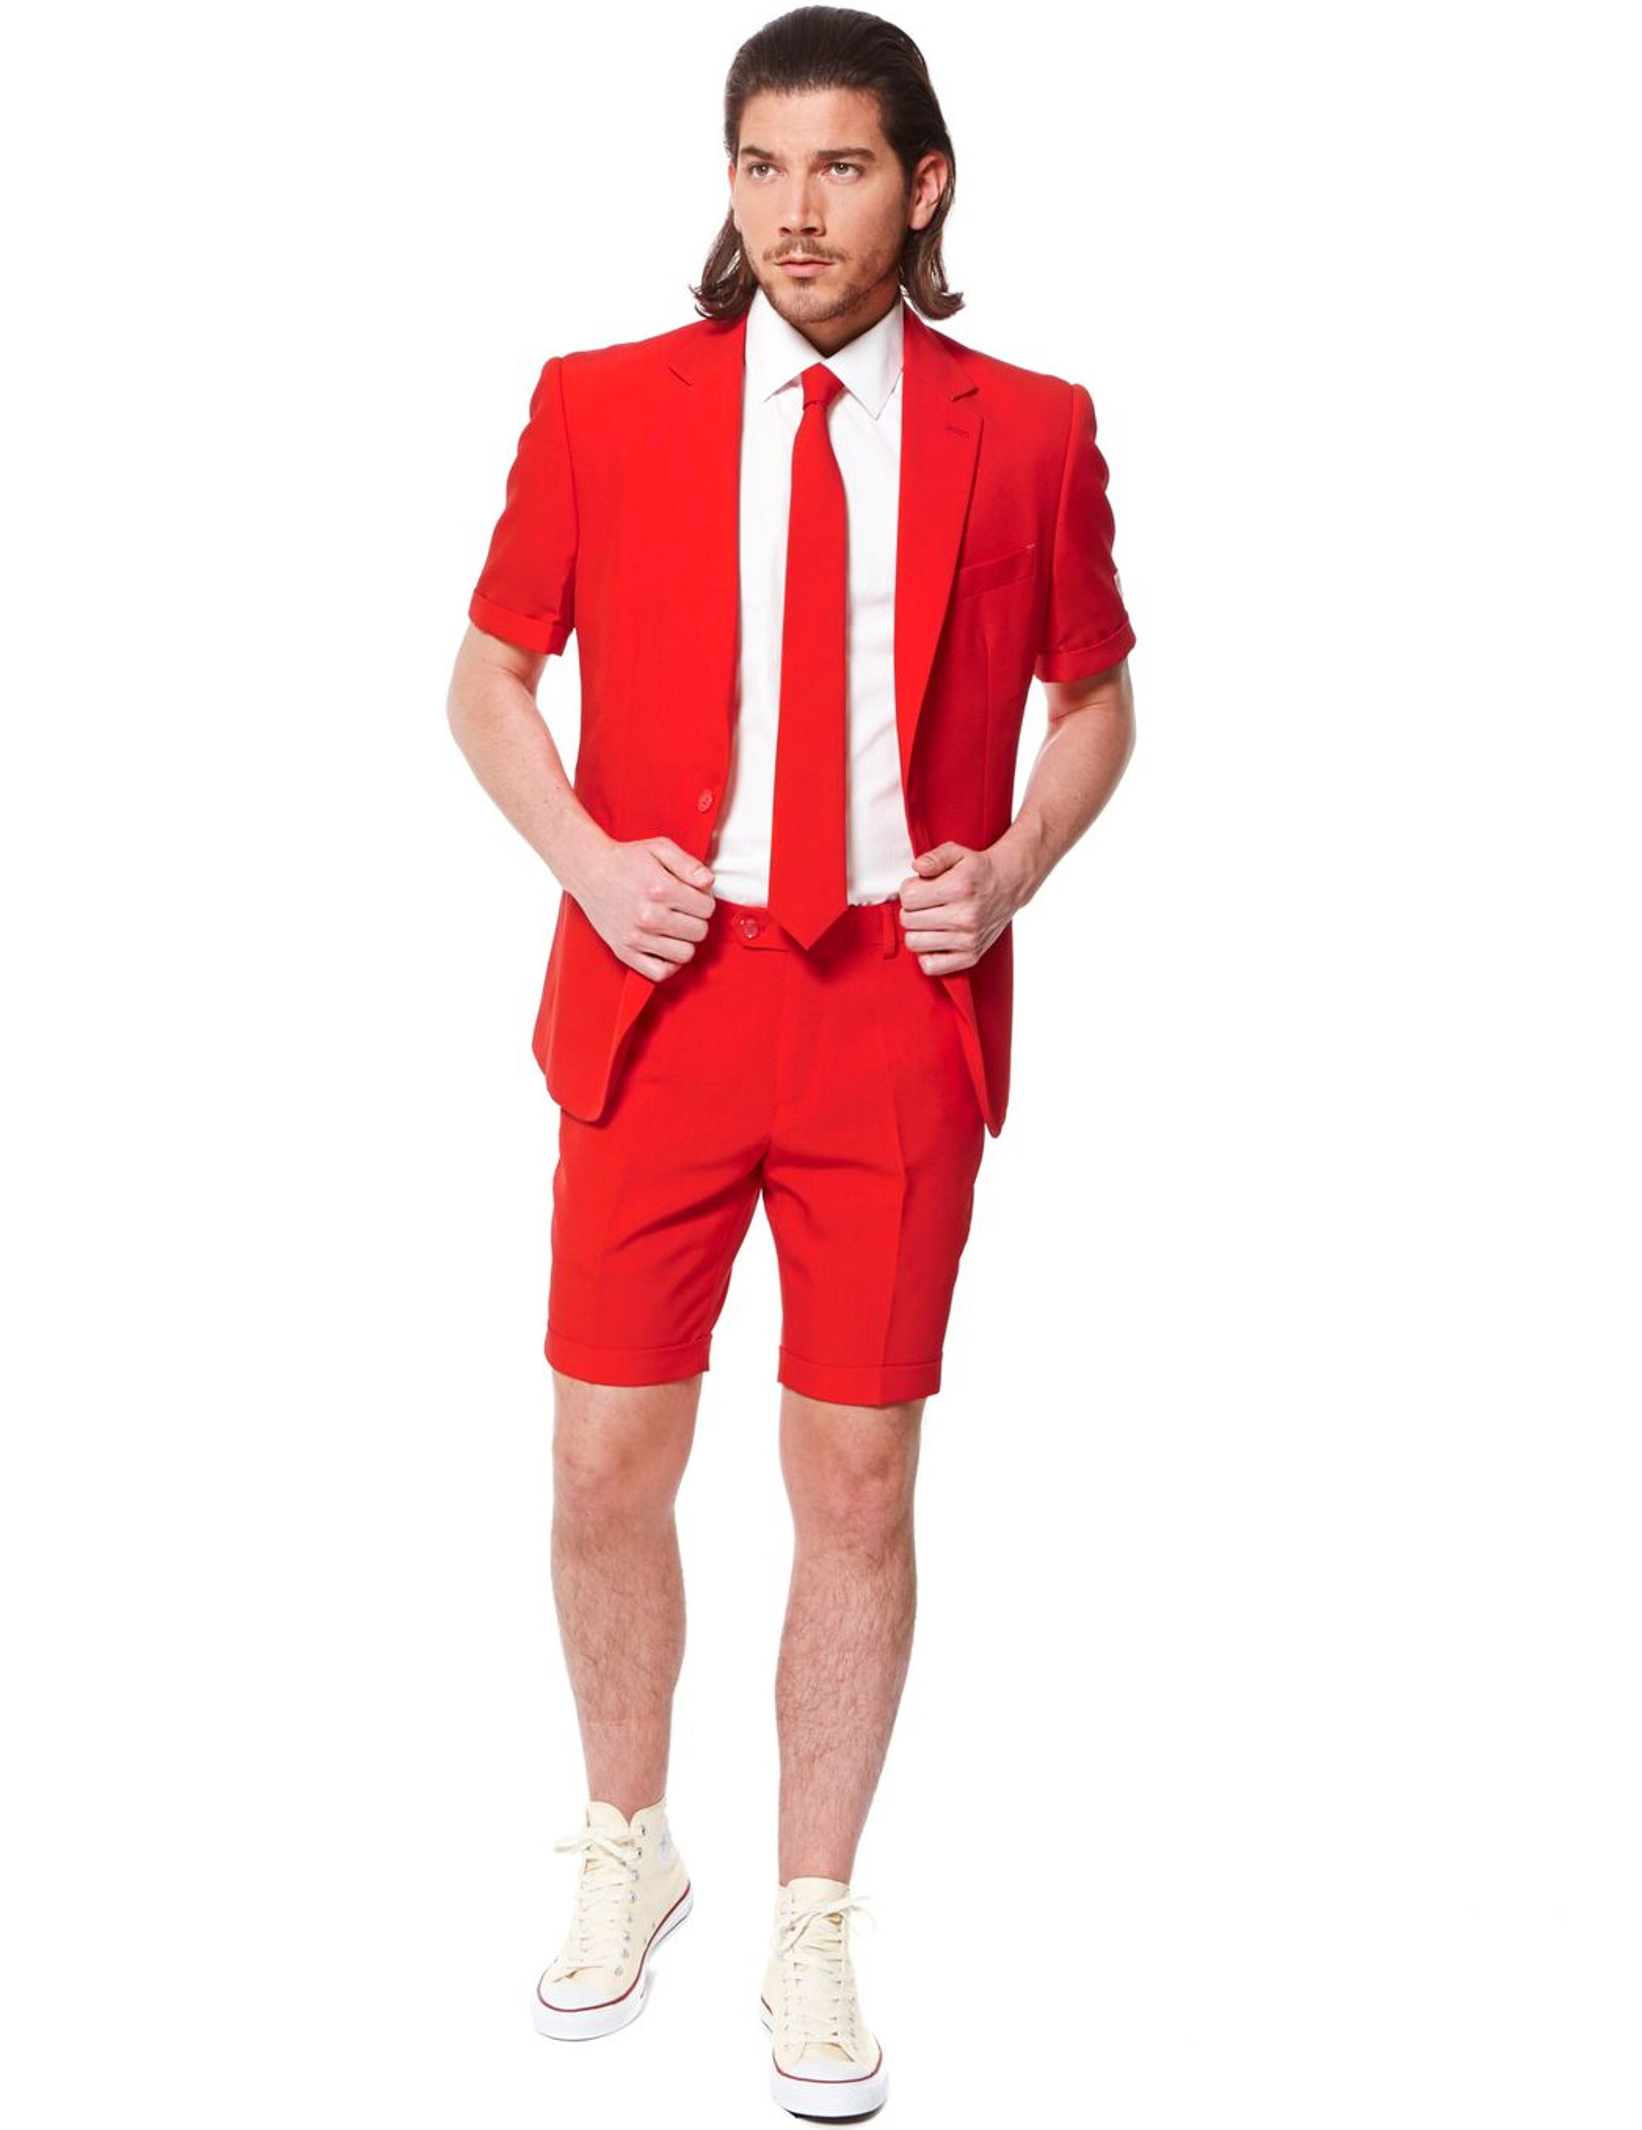 costume d 39 t mr rouge homme opposuits deguise toi achat de d guisements adultes. Black Bedroom Furniture Sets. Home Design Ideas